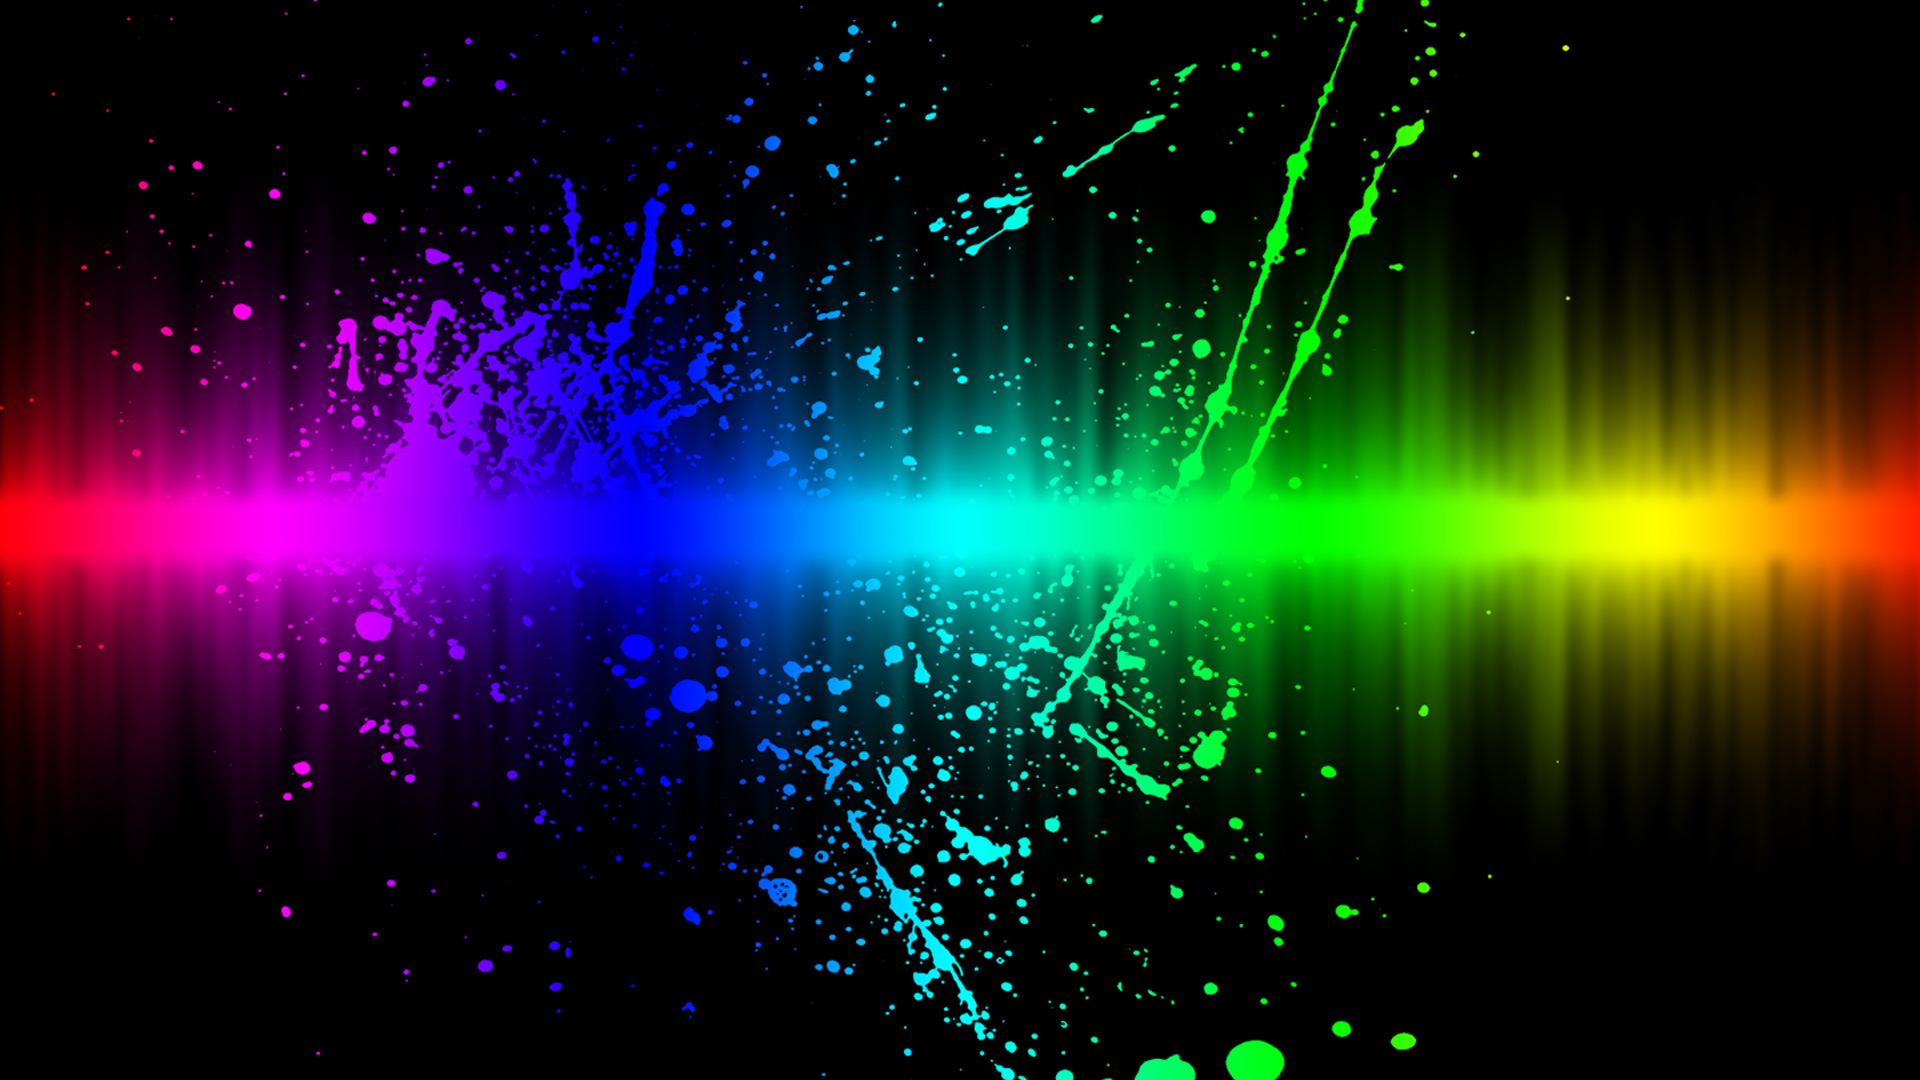 43 Colorful Desktop Backgrounds   Technosamrat 1920x1080